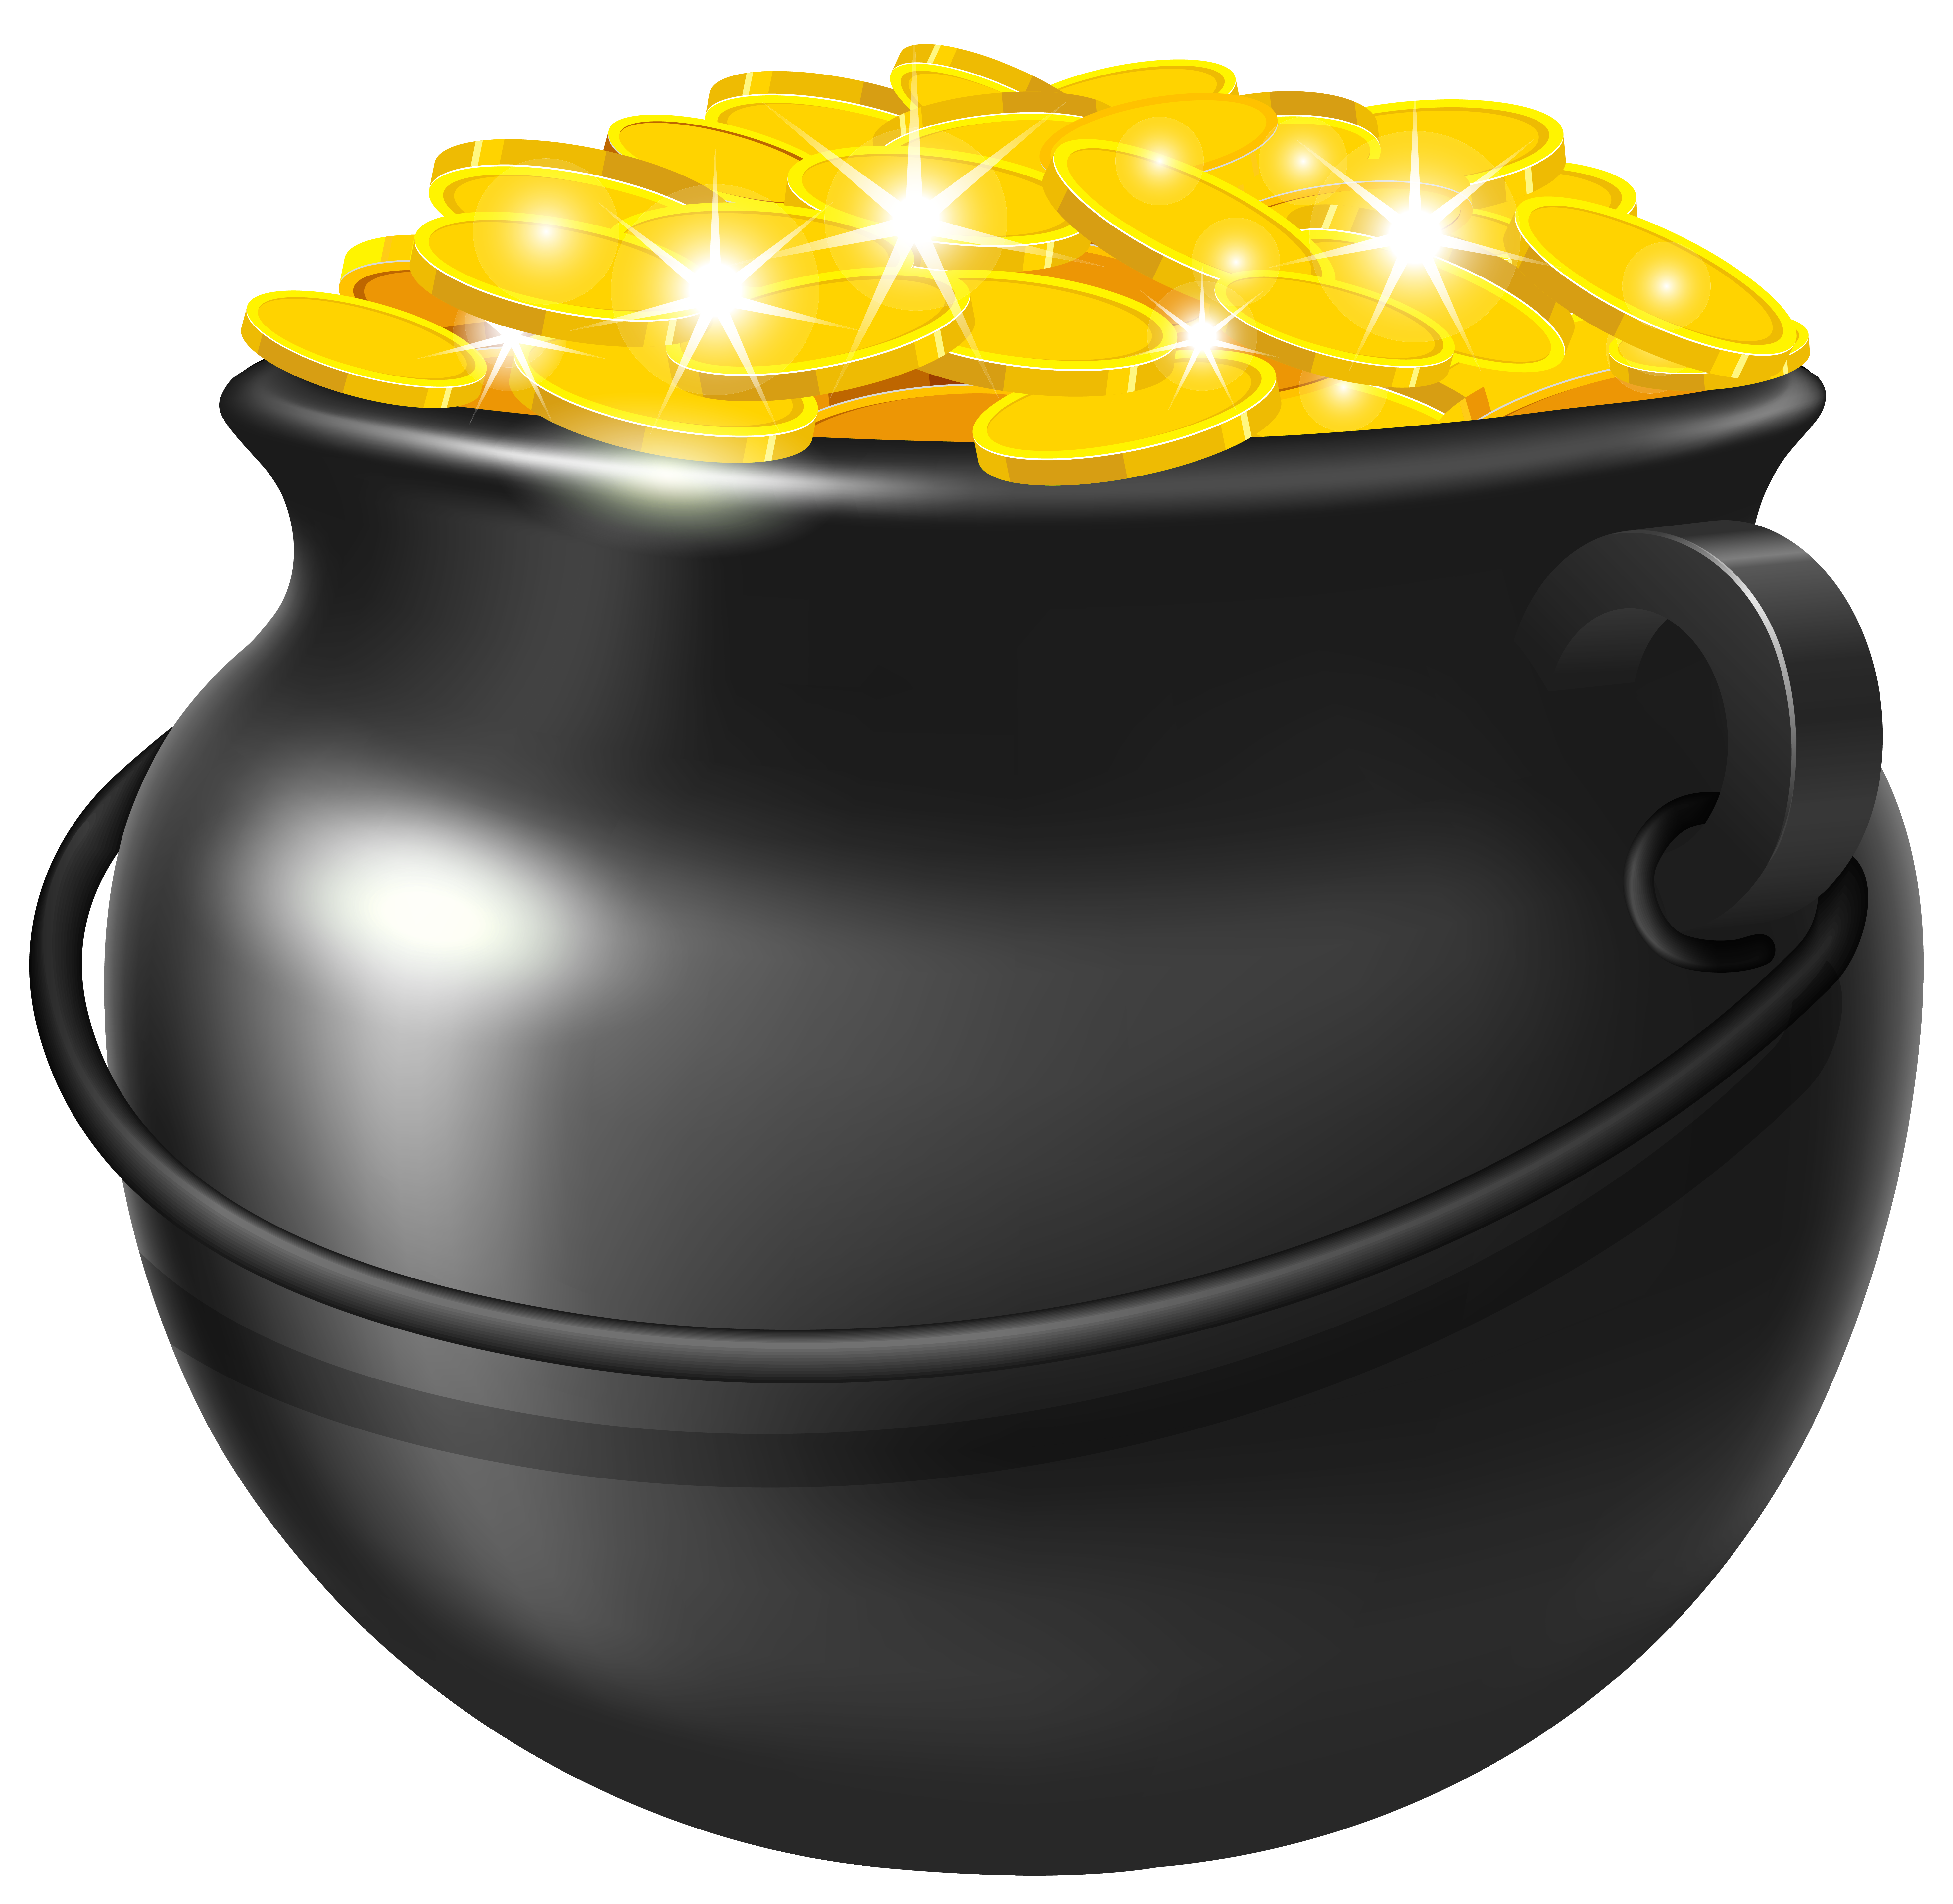 Pots of gold clipart picture transparent download Pin by Crystal Kostich on Camping | Pot of gold, St patricks ... picture transparent download